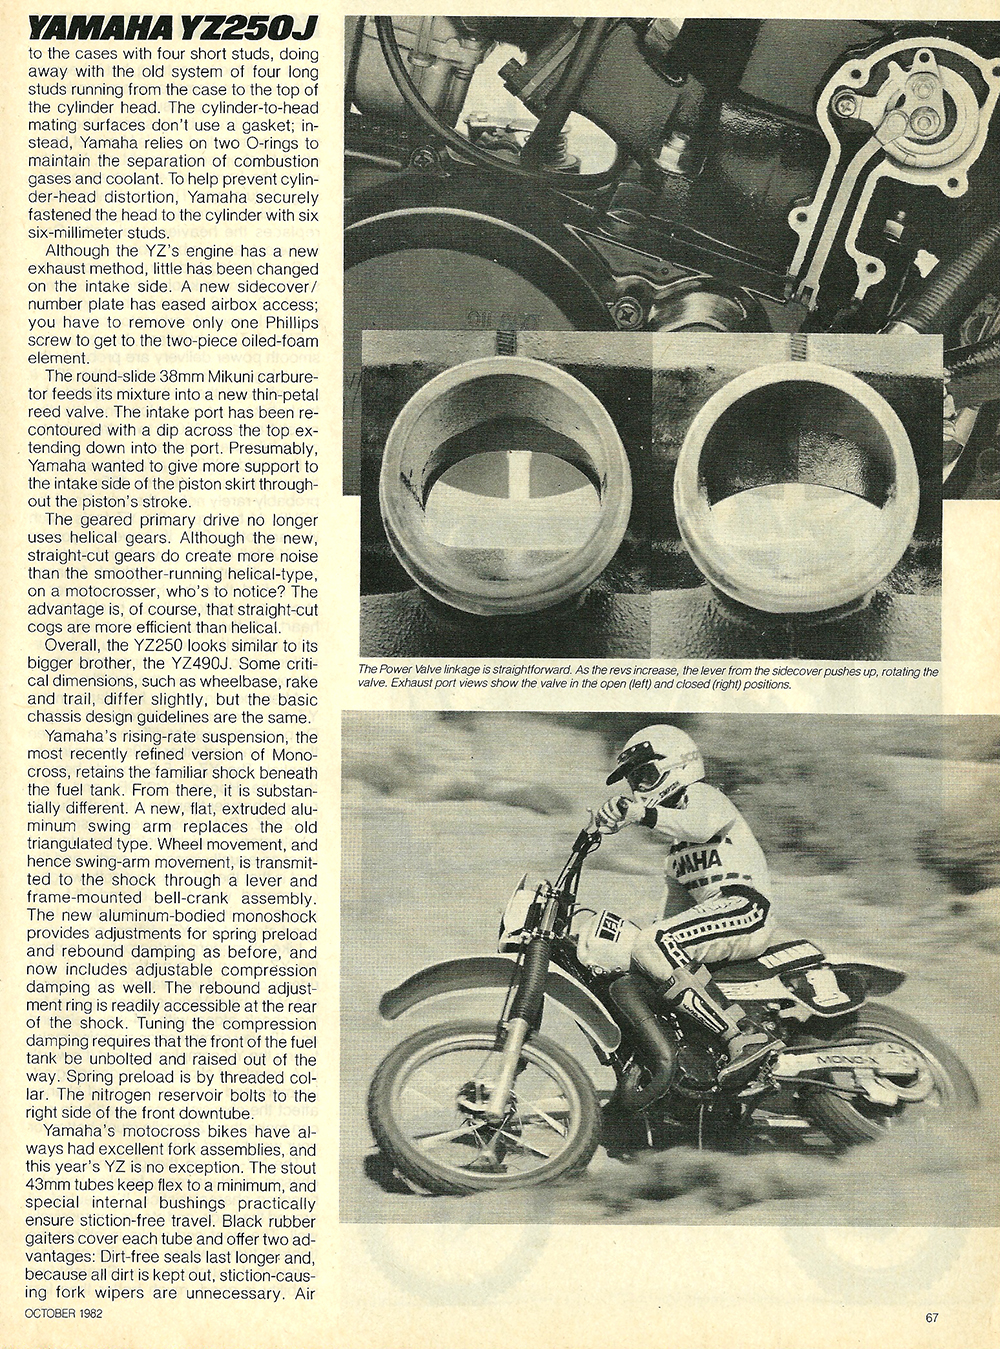 1982 Yamaha YZ250J road test 5.jpg